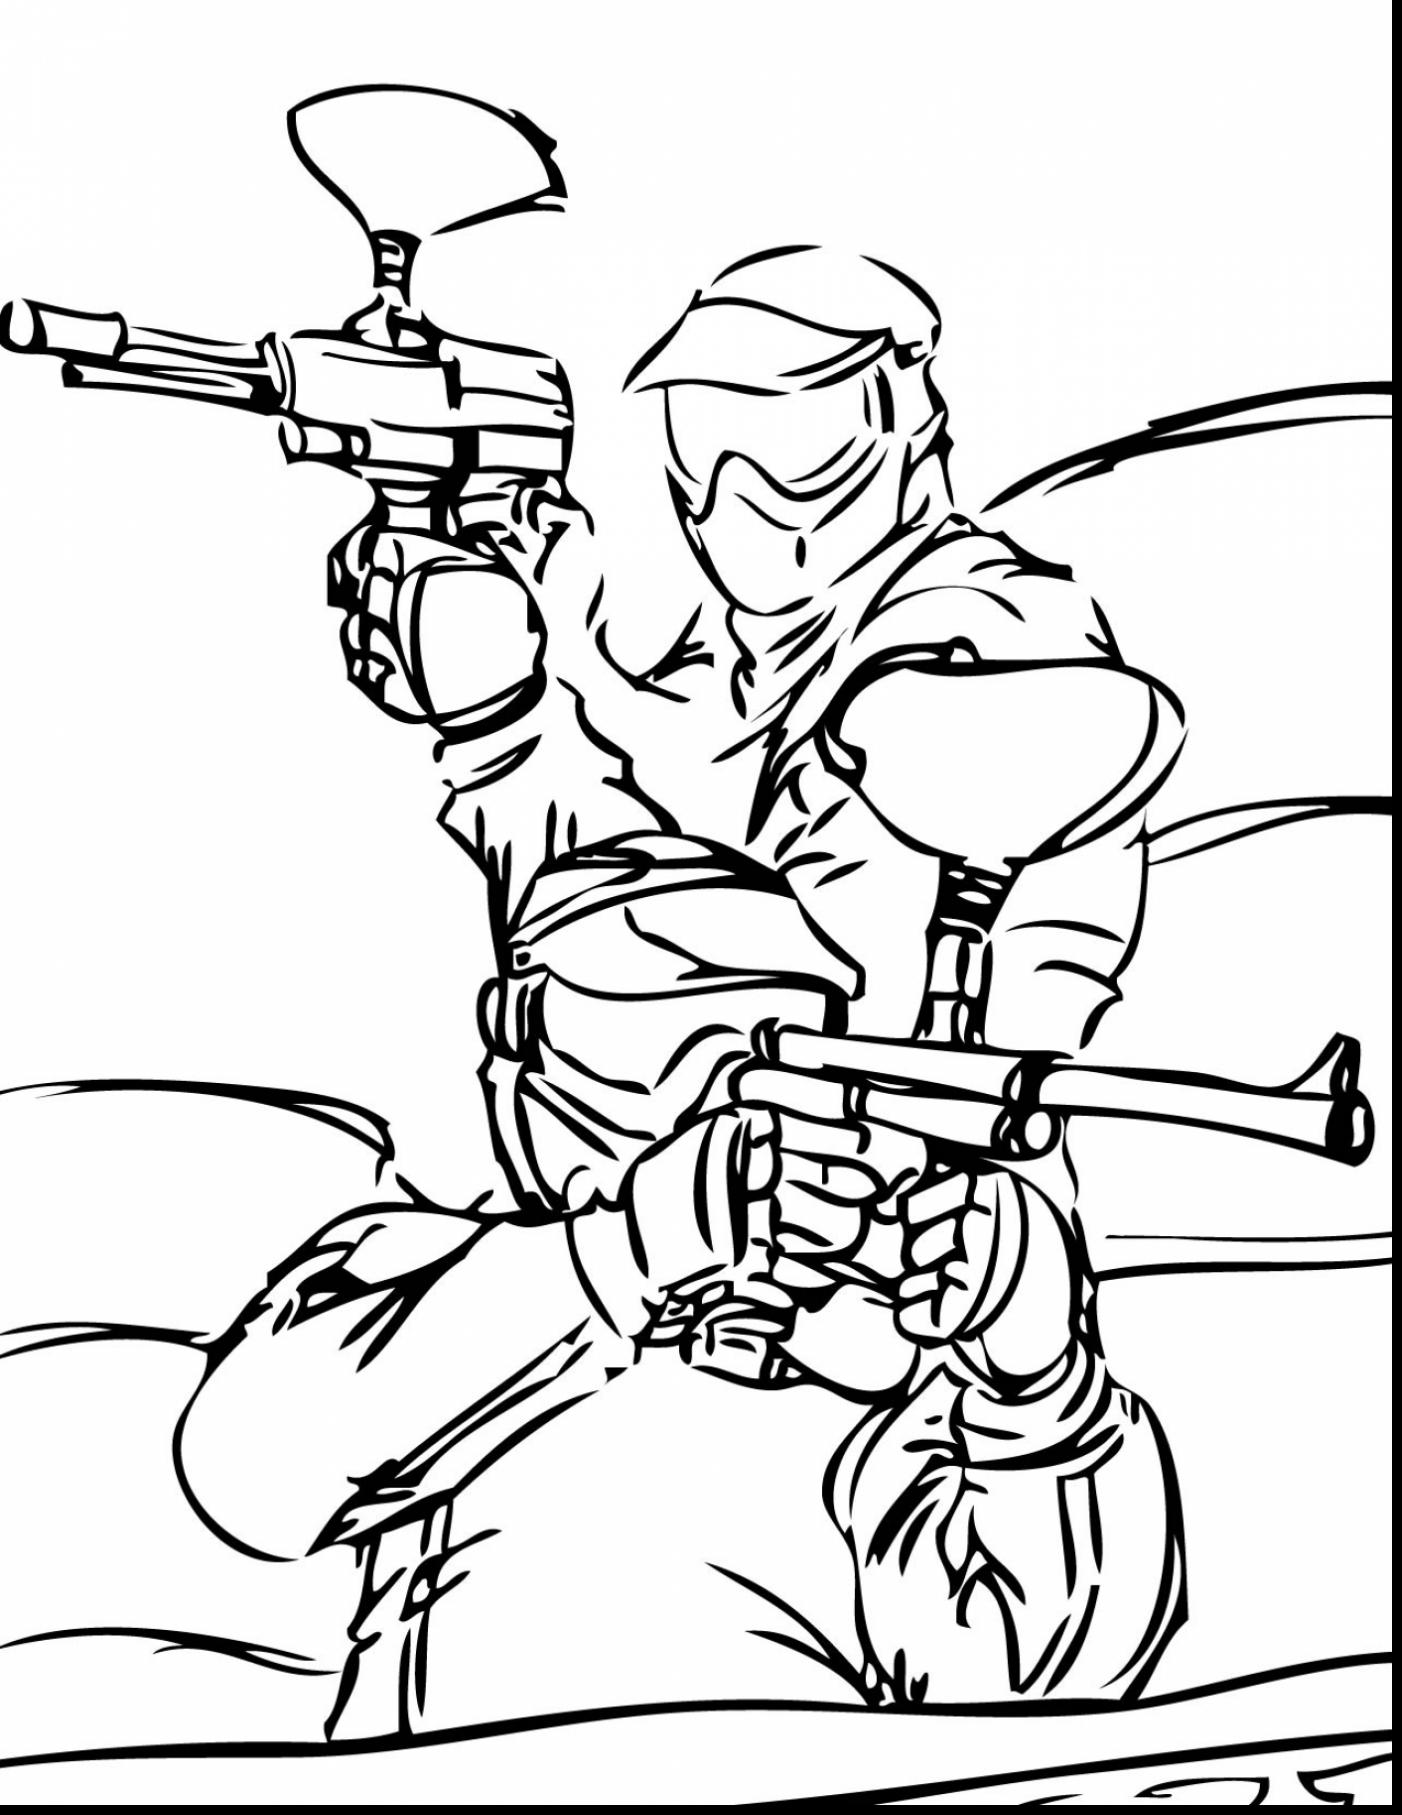 1402x1815 Extraordinary Coloring Pages To Print Of Paintball Gun With Sports